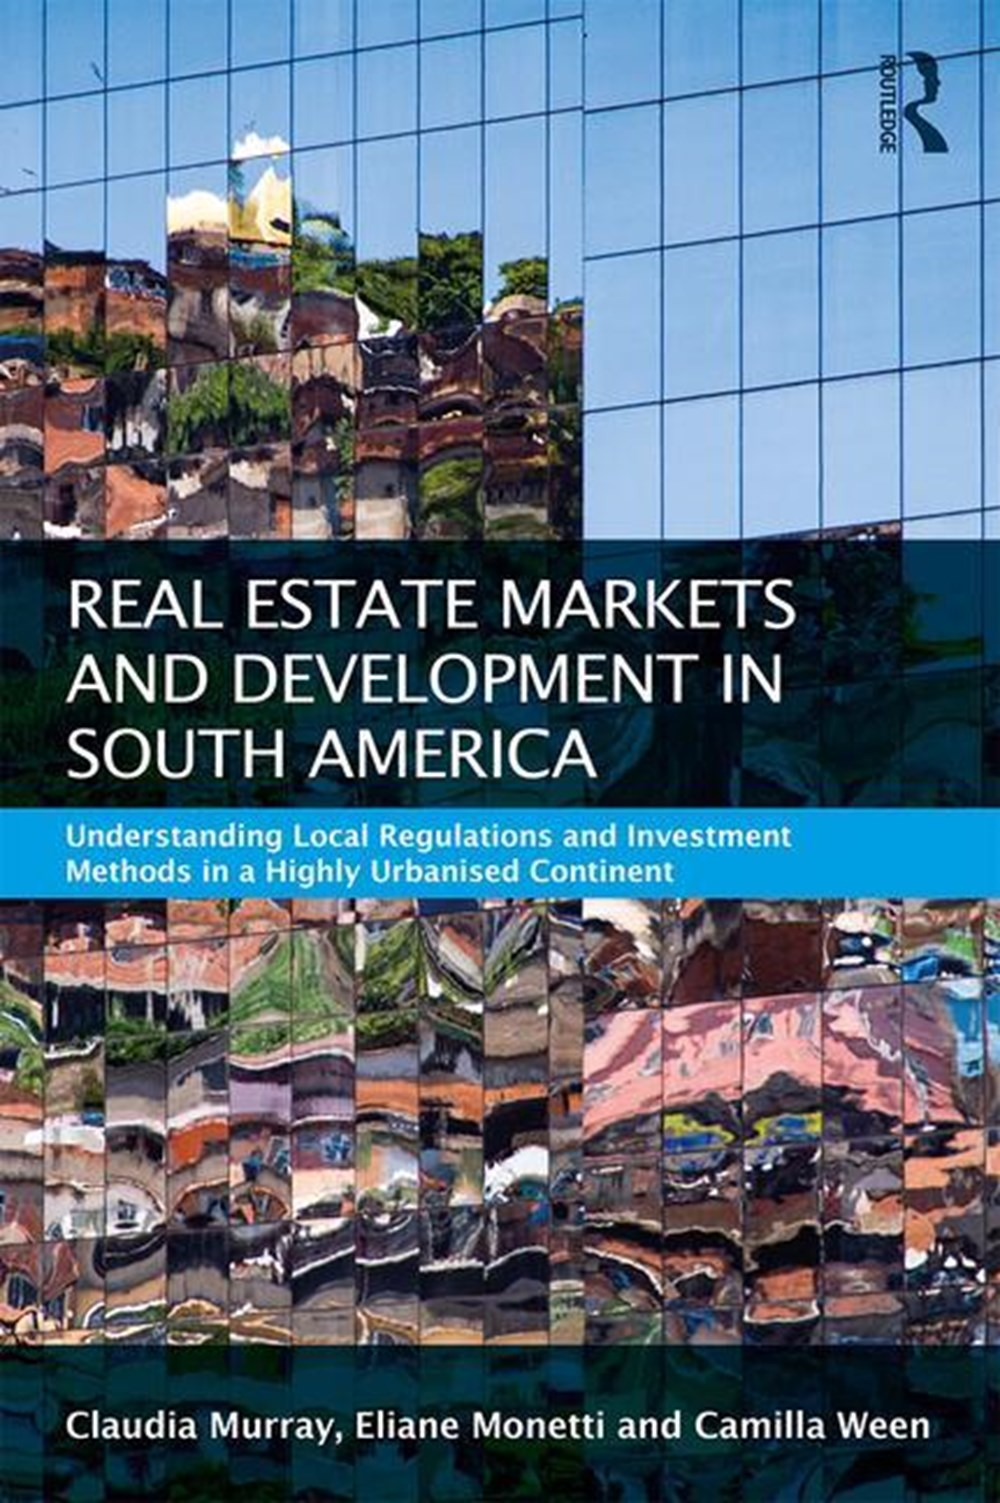 Real Estate and Urban Development in South America Understanding Local Regulations and Investment Me